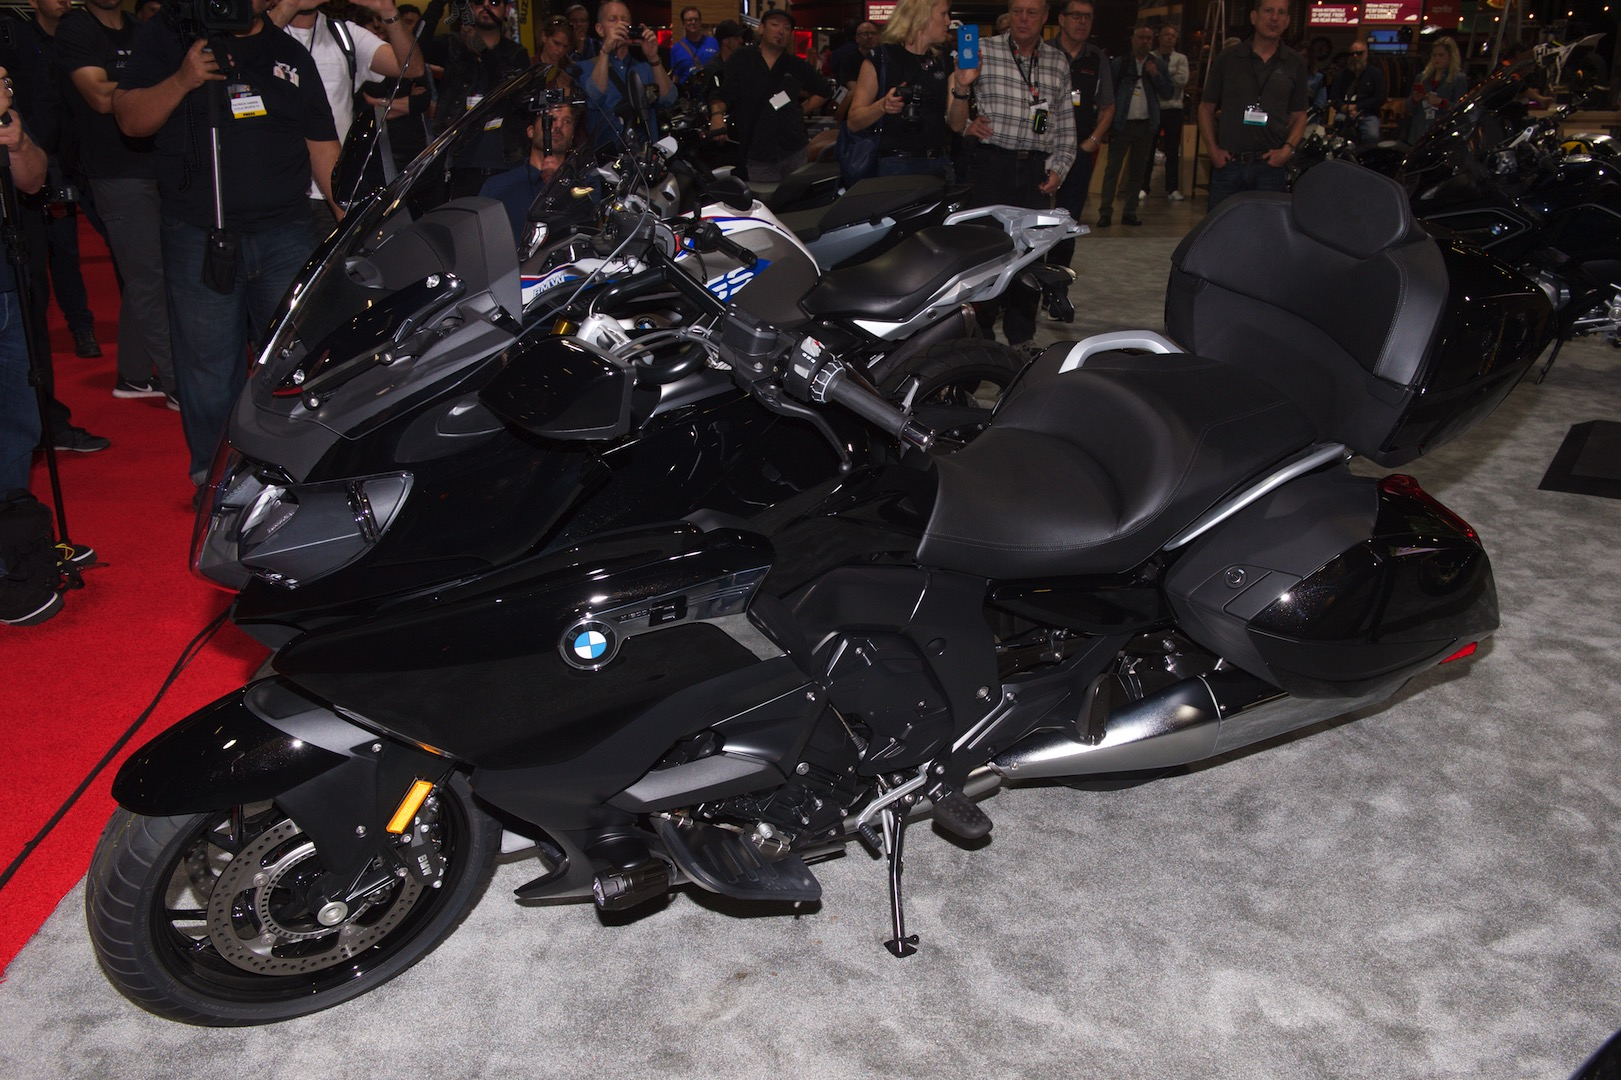 2018 BMW K 1600 Grand America touring motorcycle